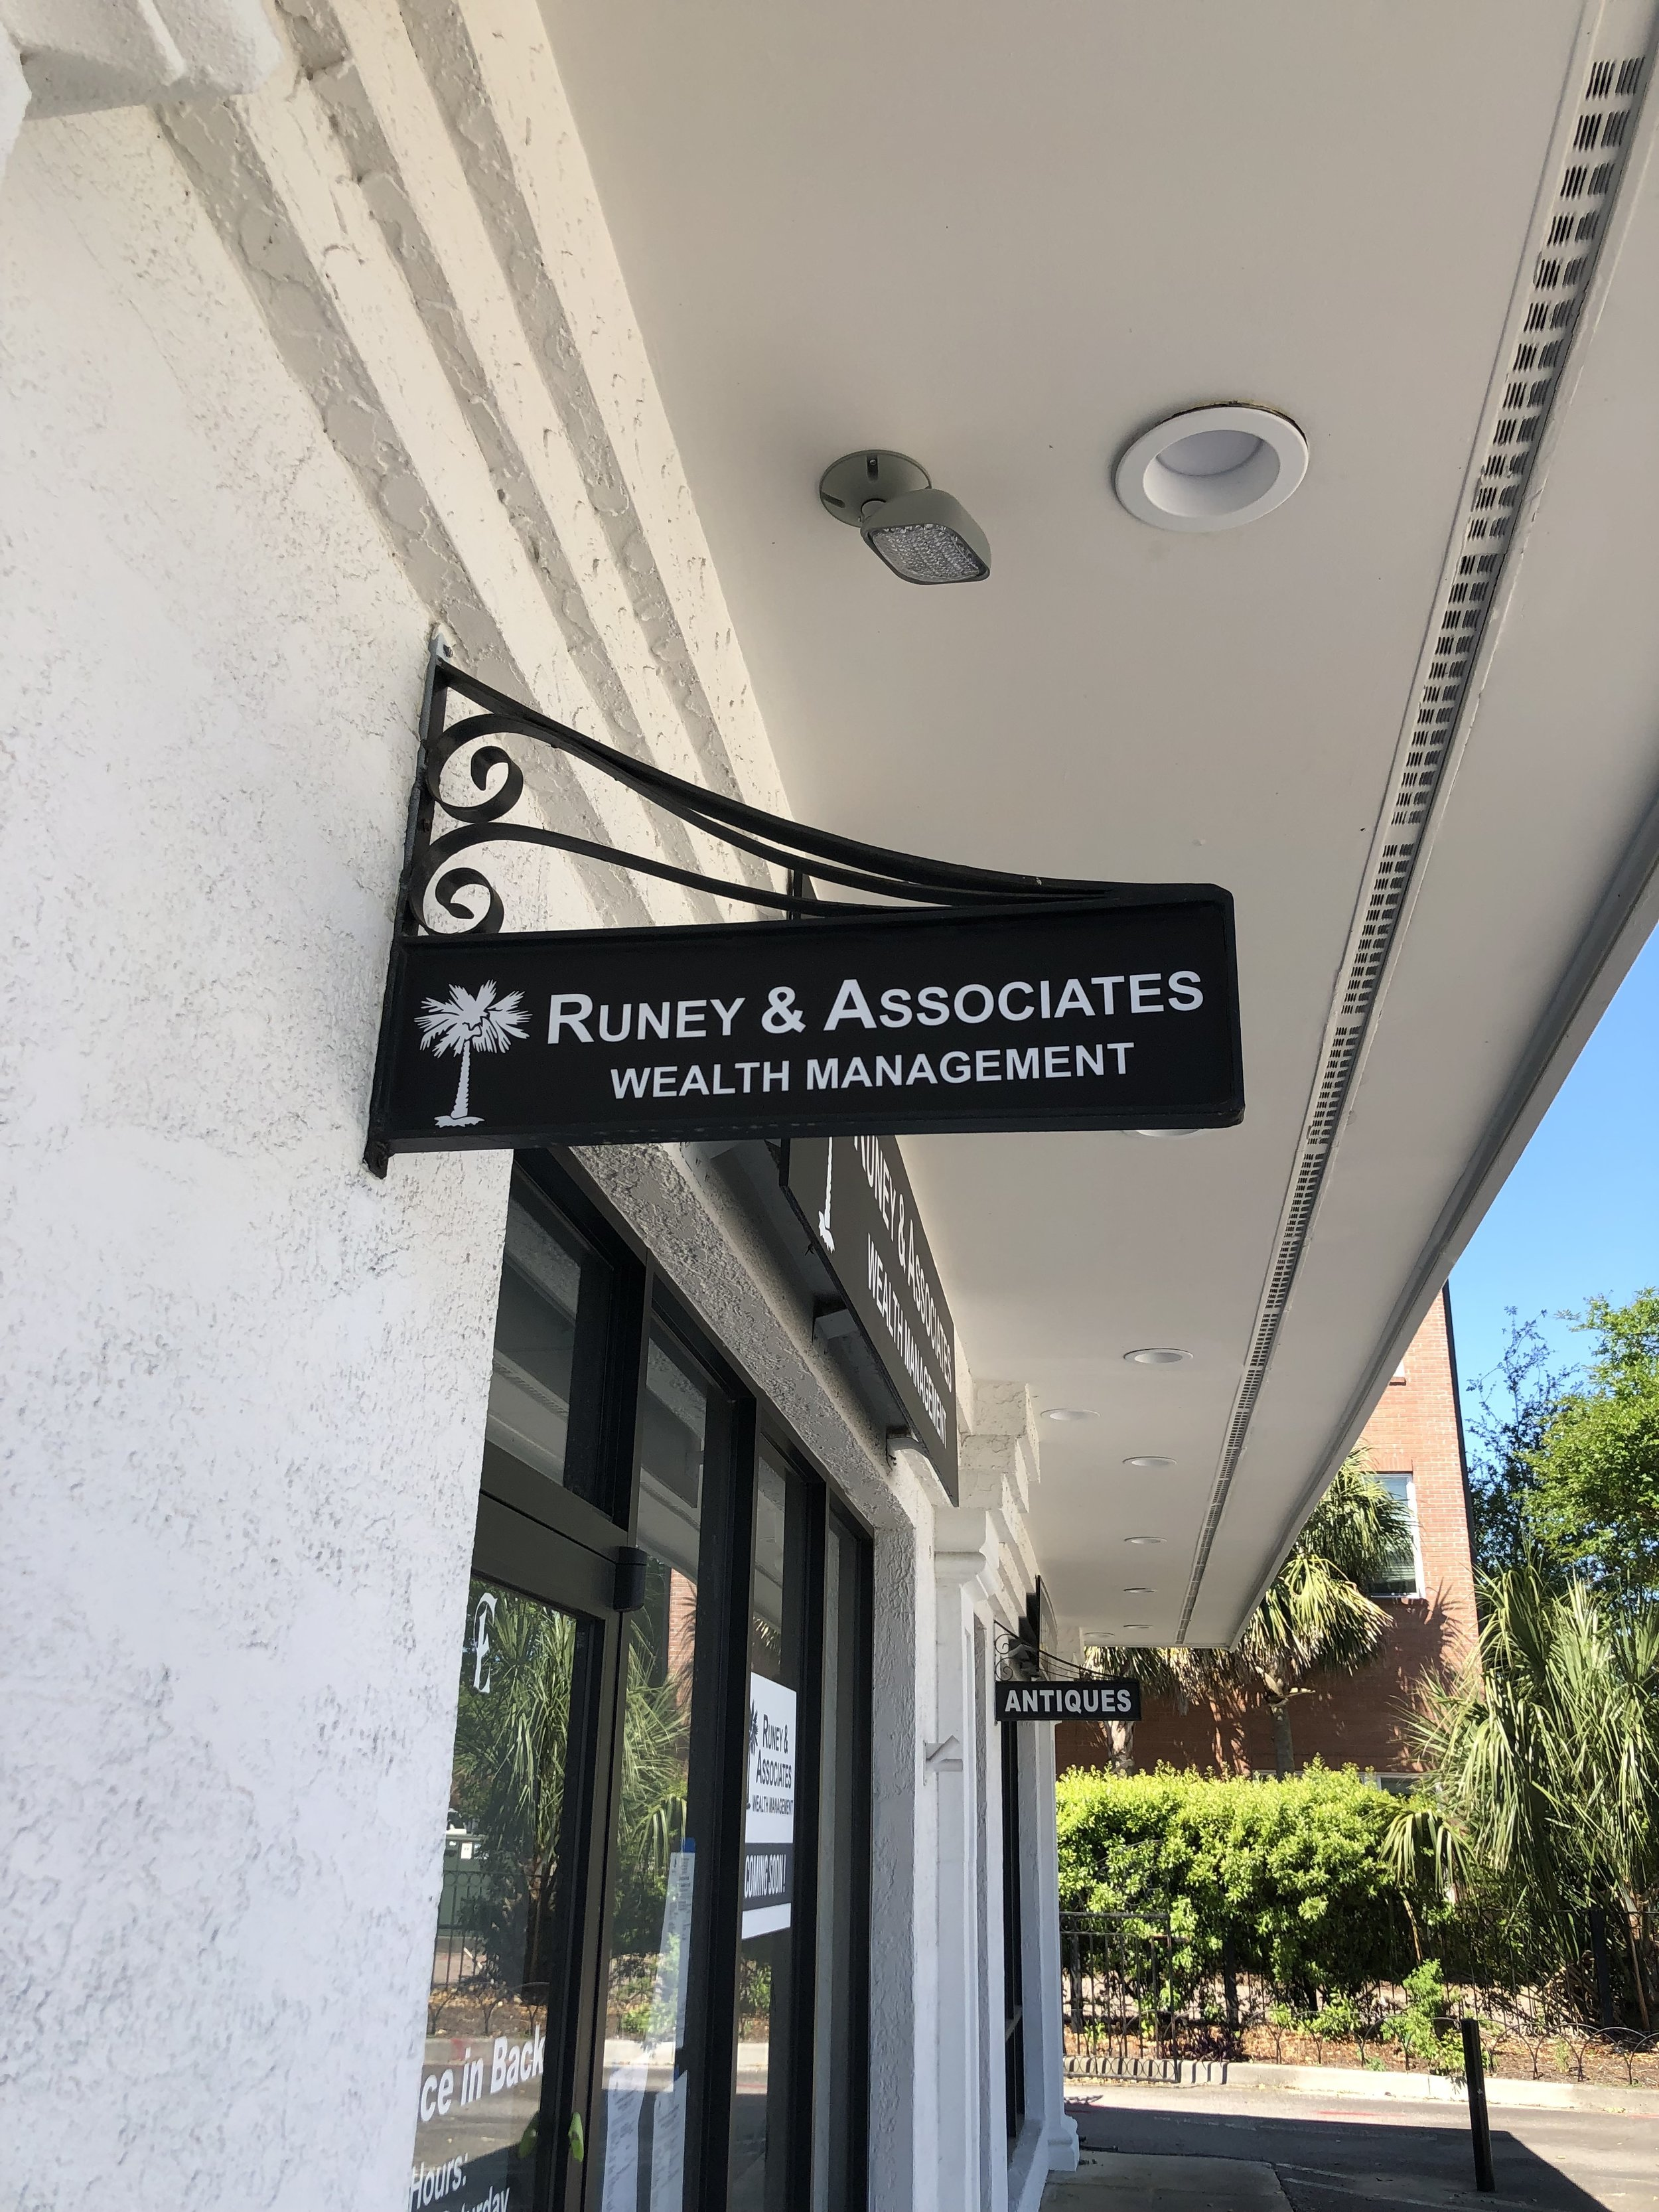 Runey & Associates Wealth Management front entrance.